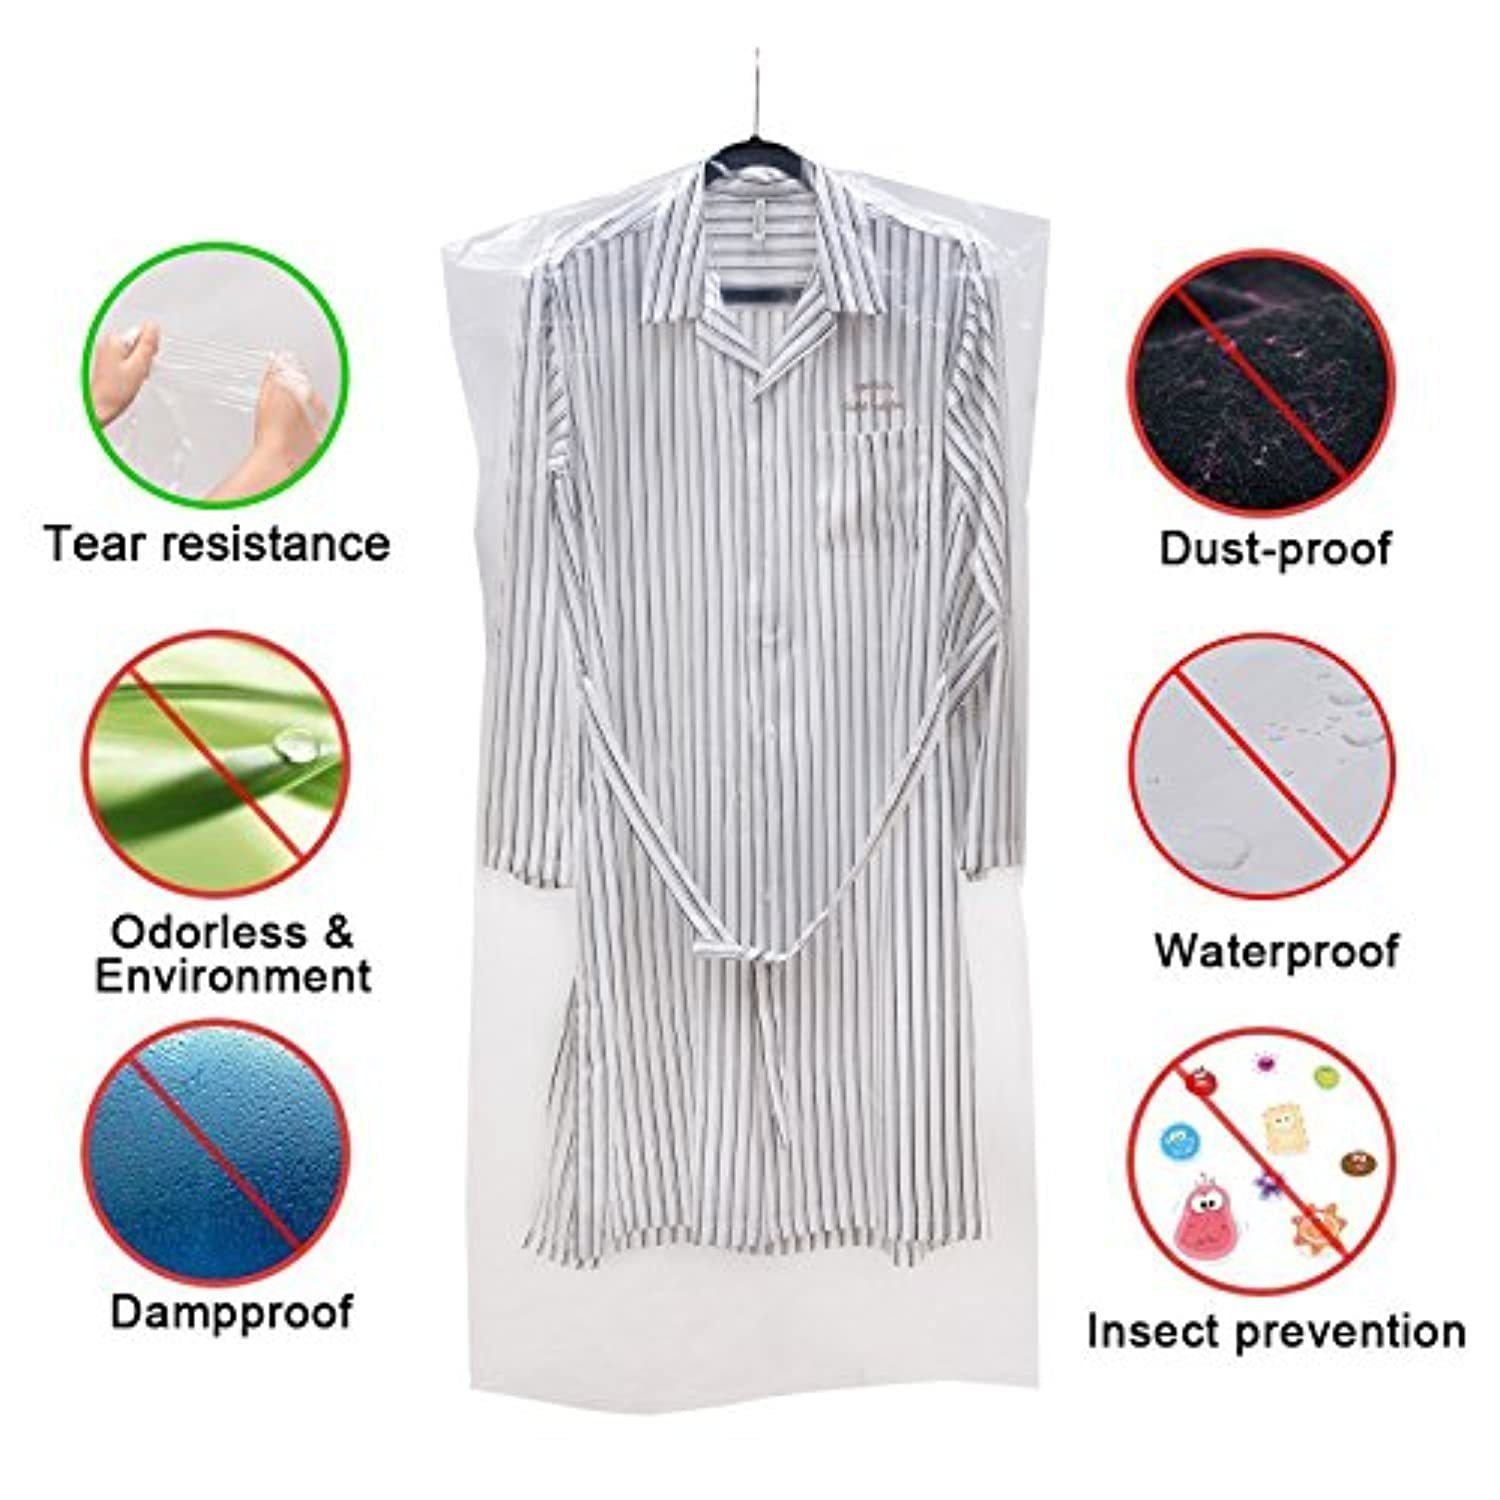 50 Pack Garment Bag Transparent Dustproof Cover Polythene Hanging Clothes Suit Protector Dress Jacket Cover for Dry Cleaner, Home Storage, Travel